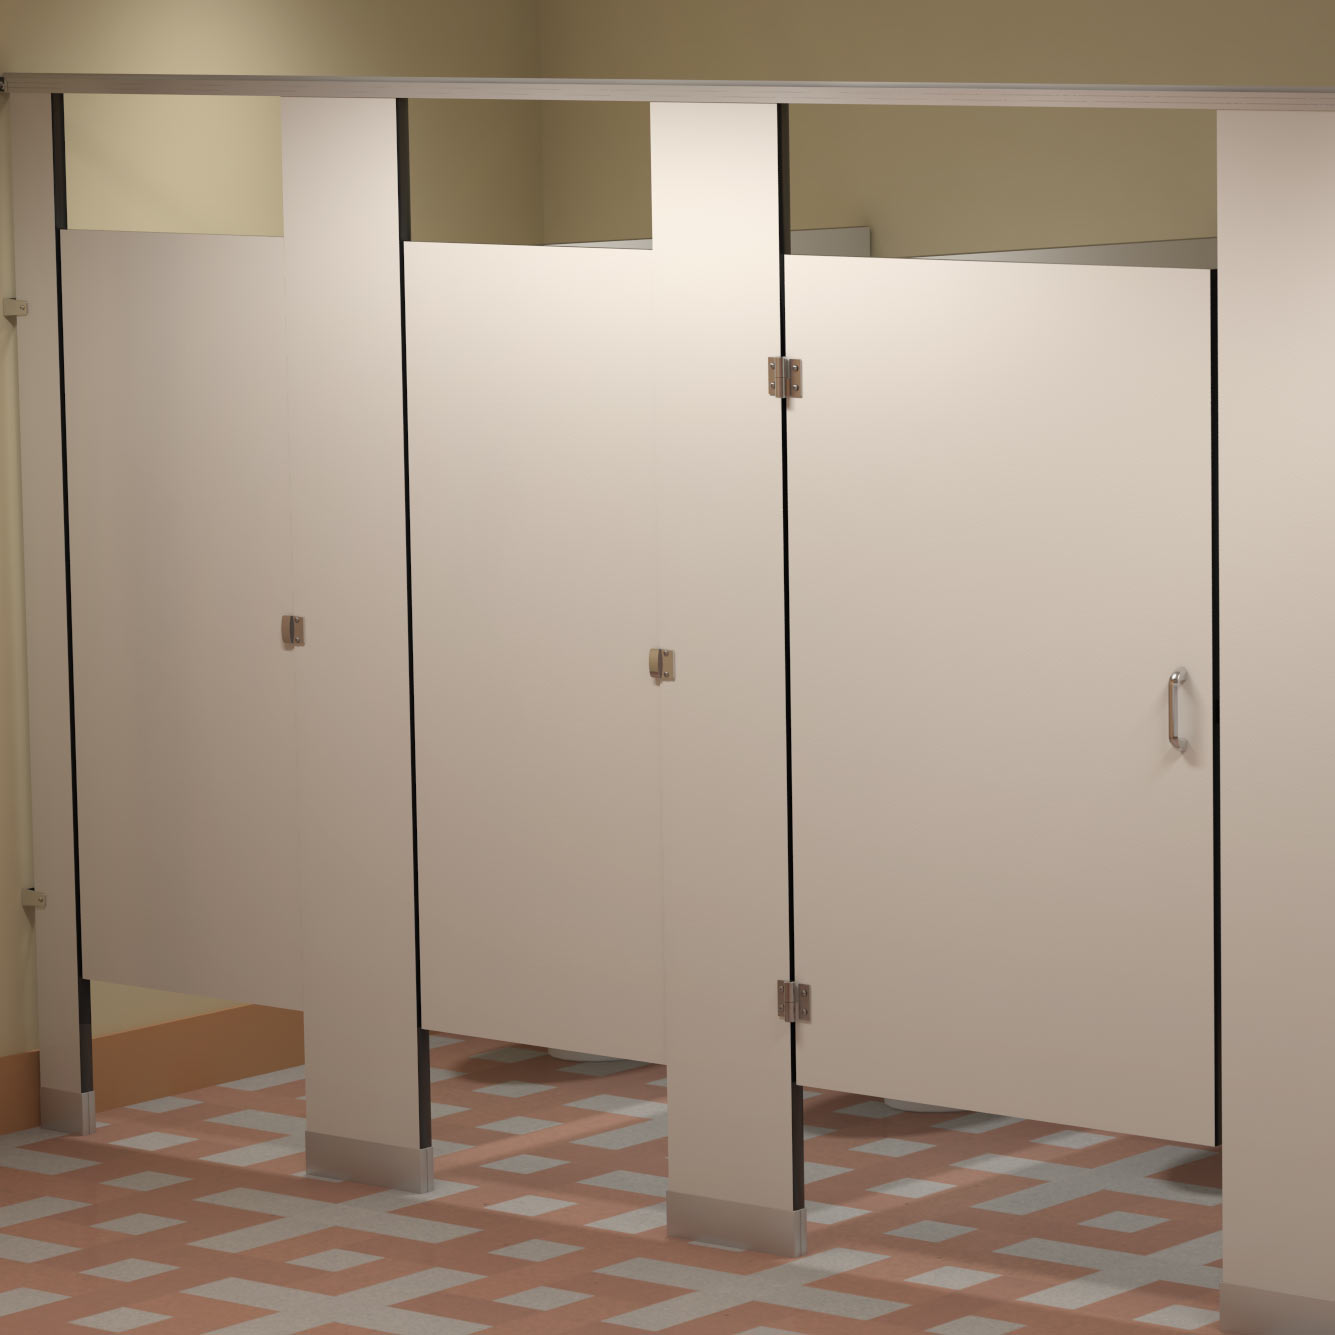 Custom Layout Design For Commercial Restroom Dividers